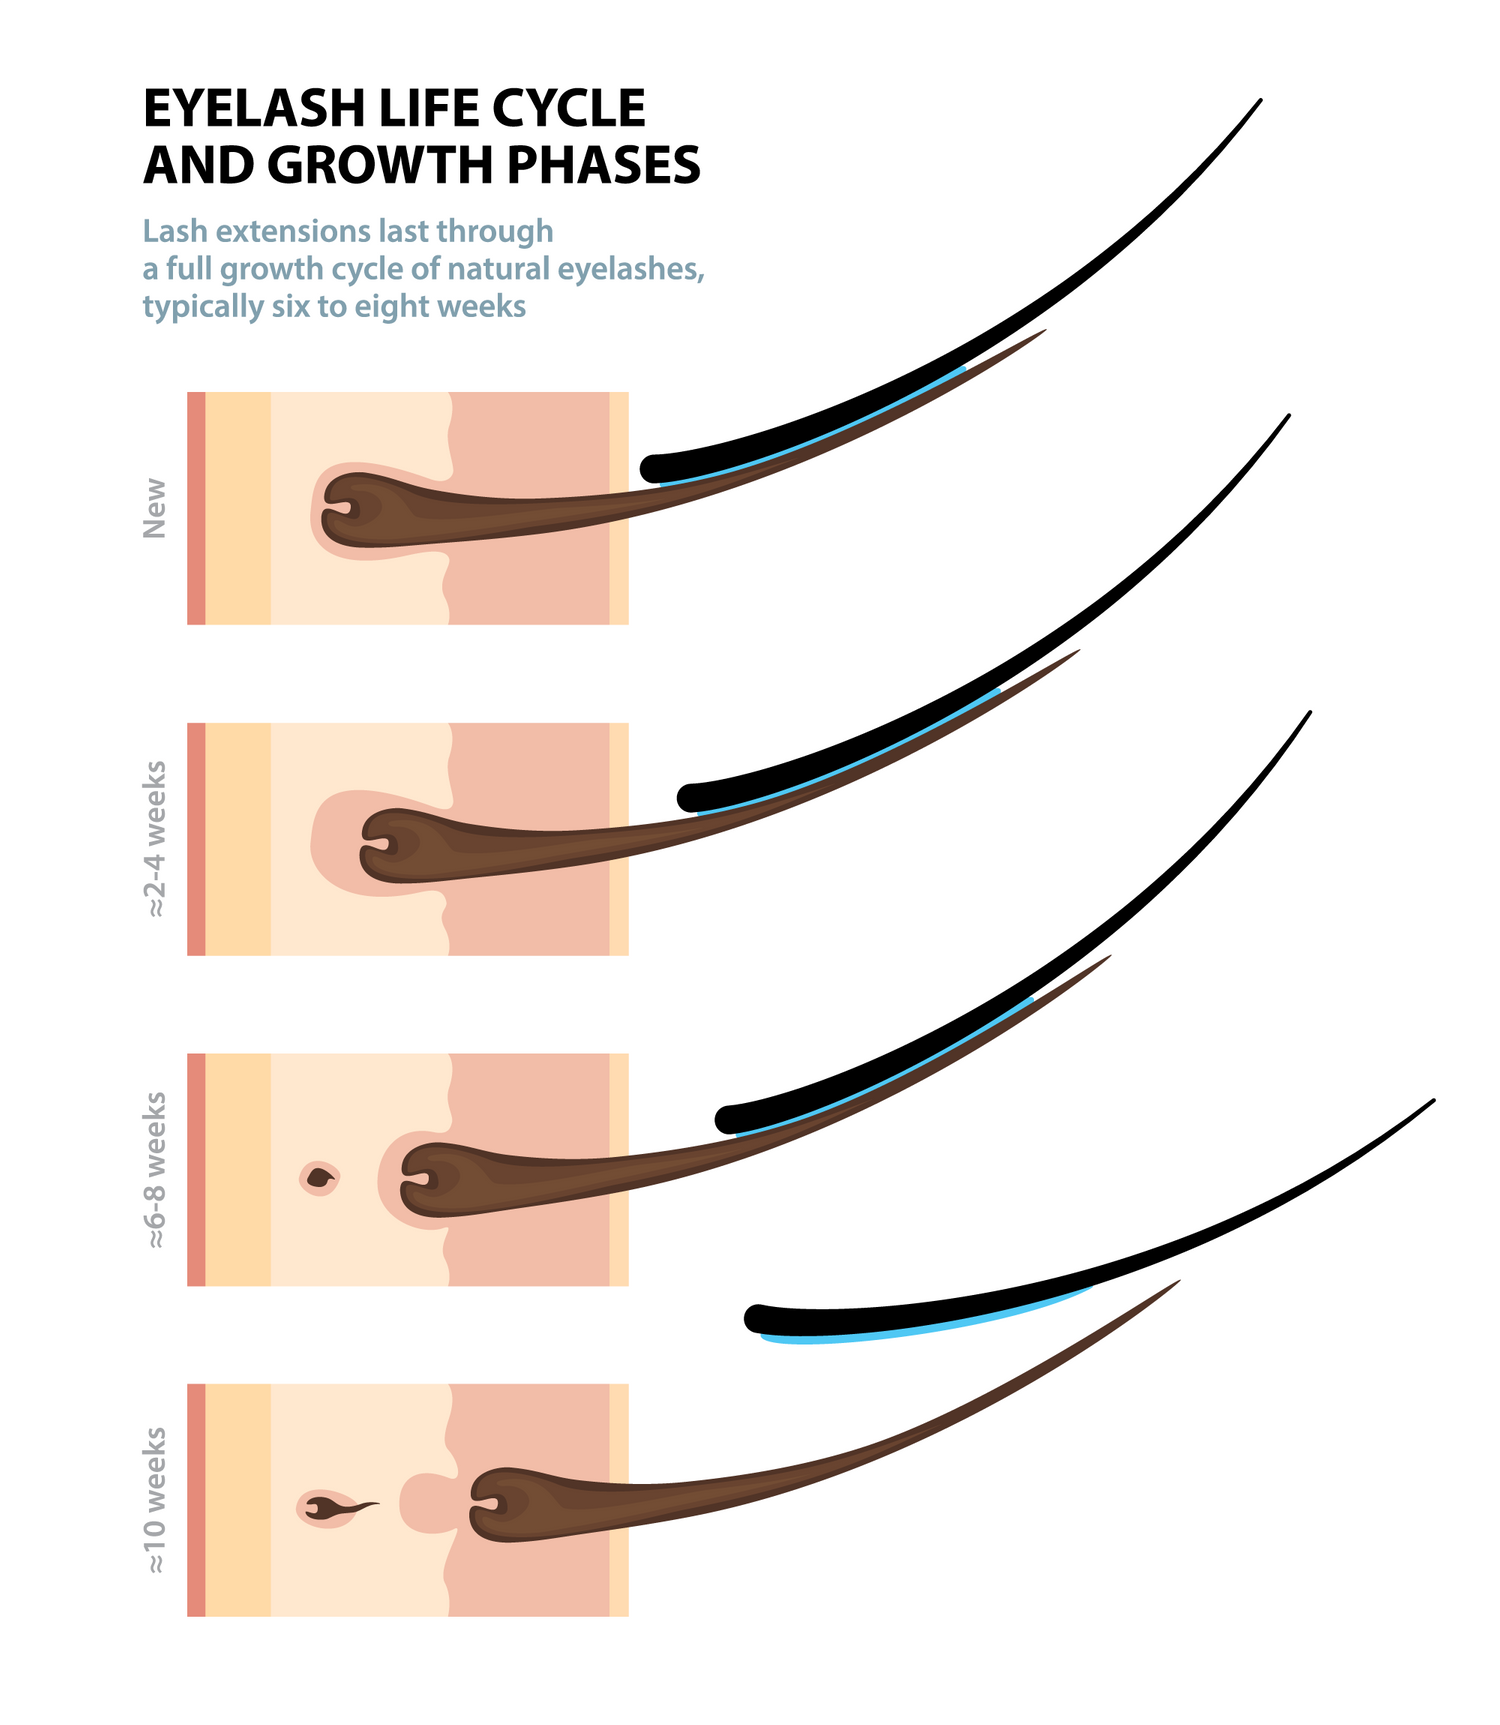 Eyelash Life Cycle and Growth phases